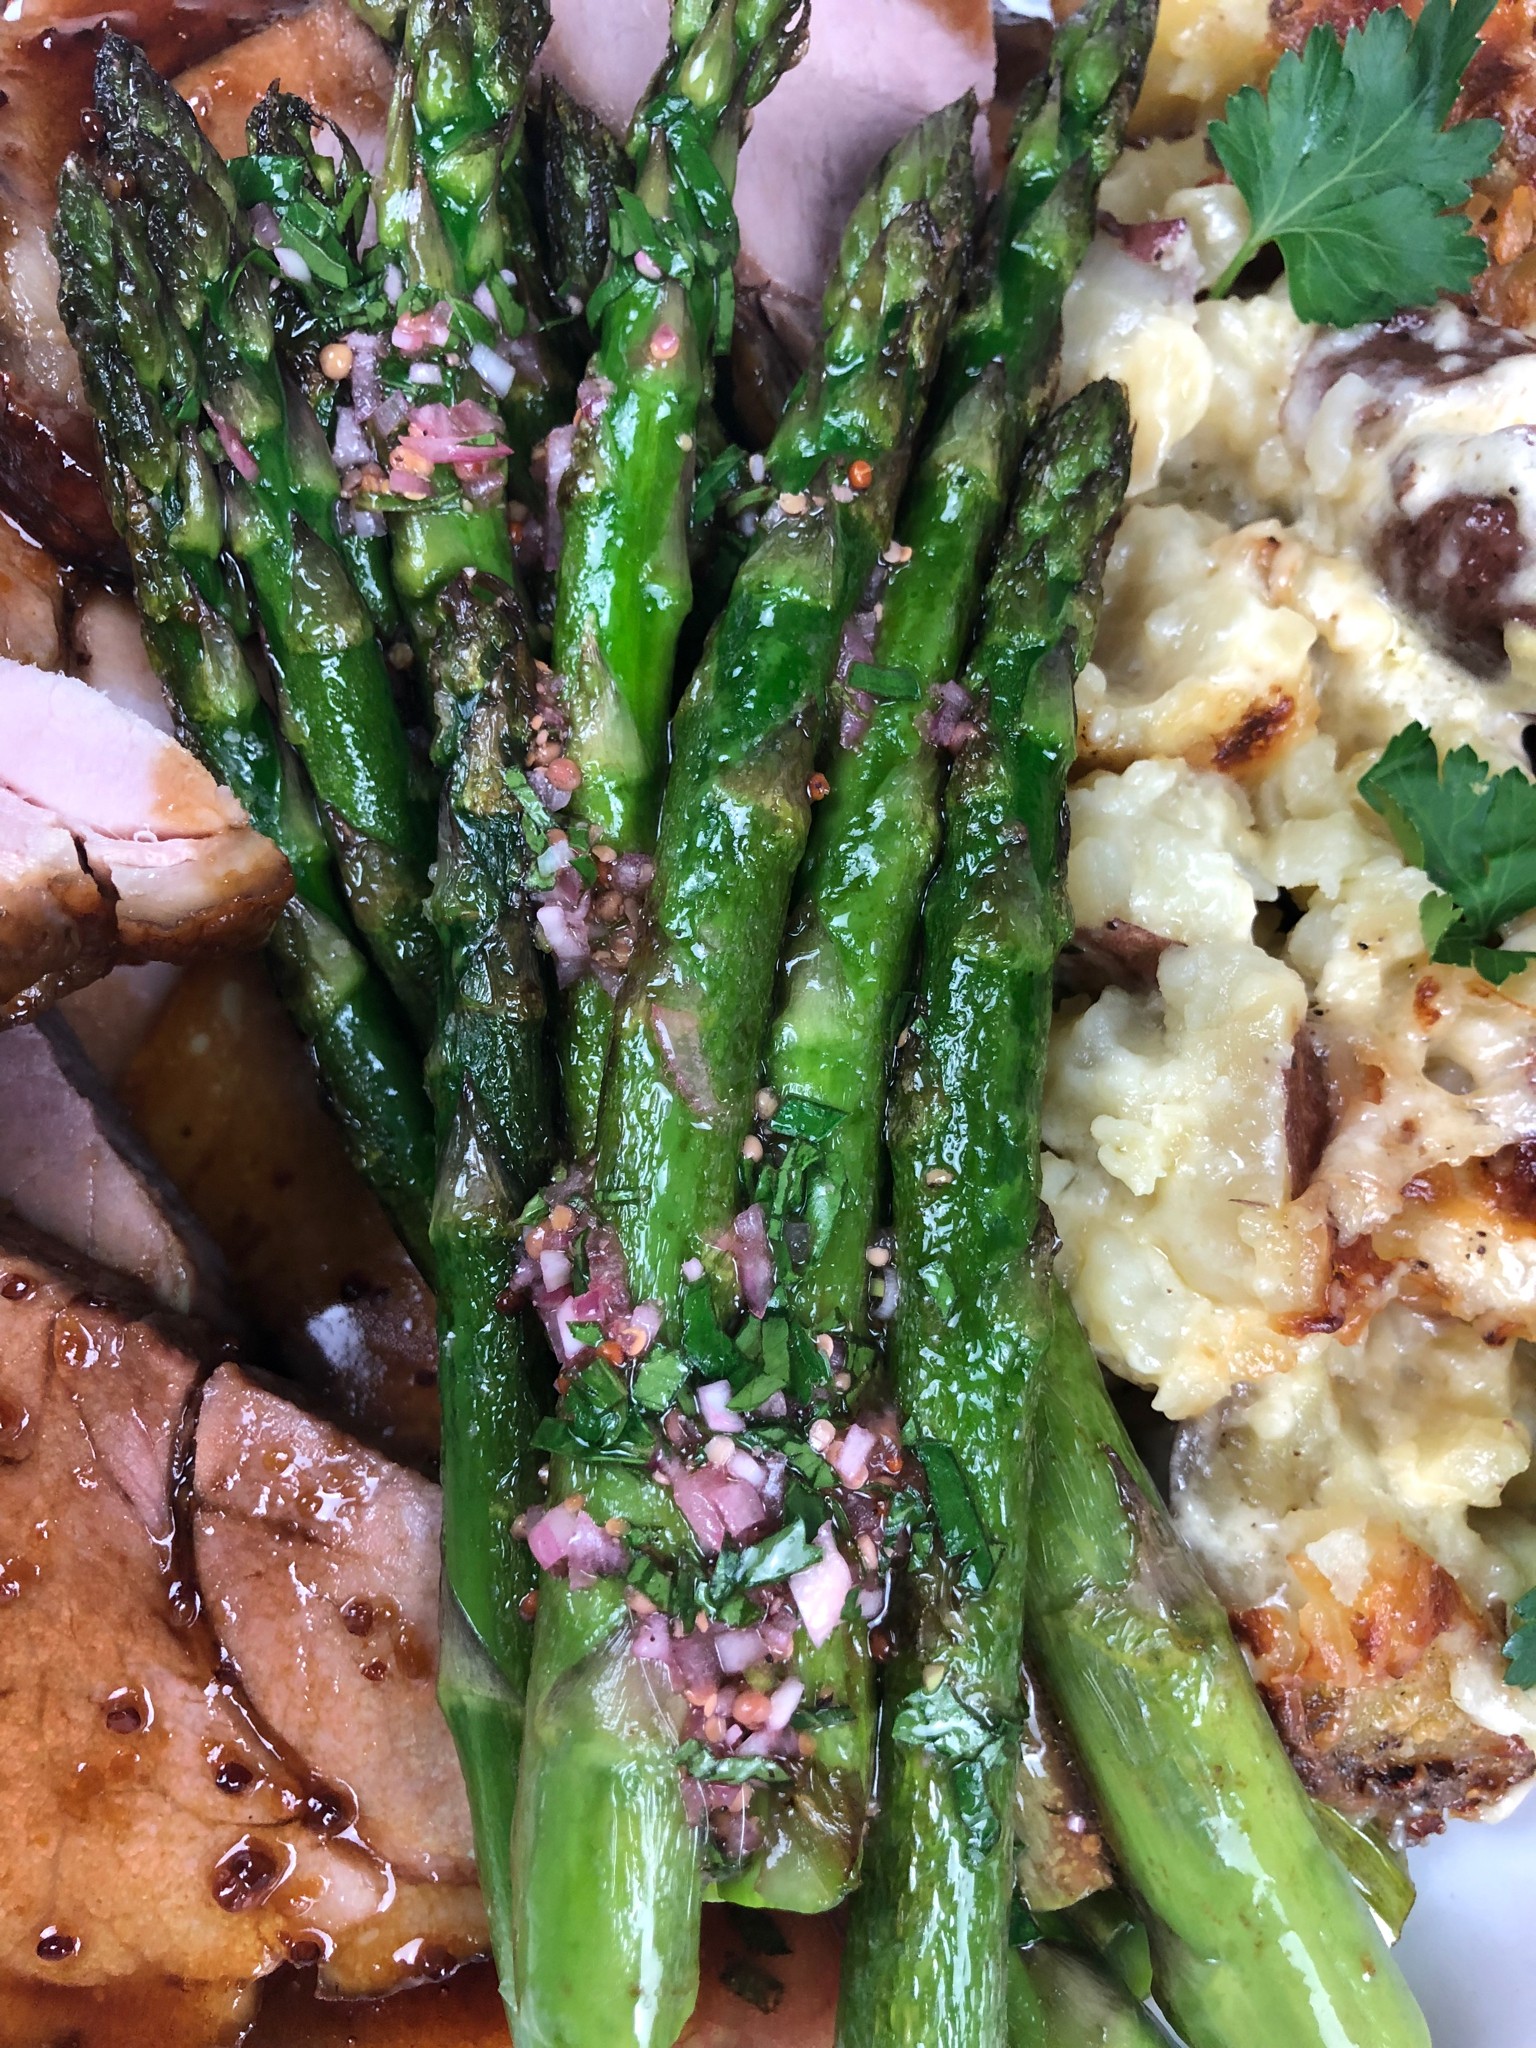 Asparagus with Blood Orange Vinaigrette, served with Broad Arrow Farm  Smoked Ham  and Smashed Potatoes Au Gratin.